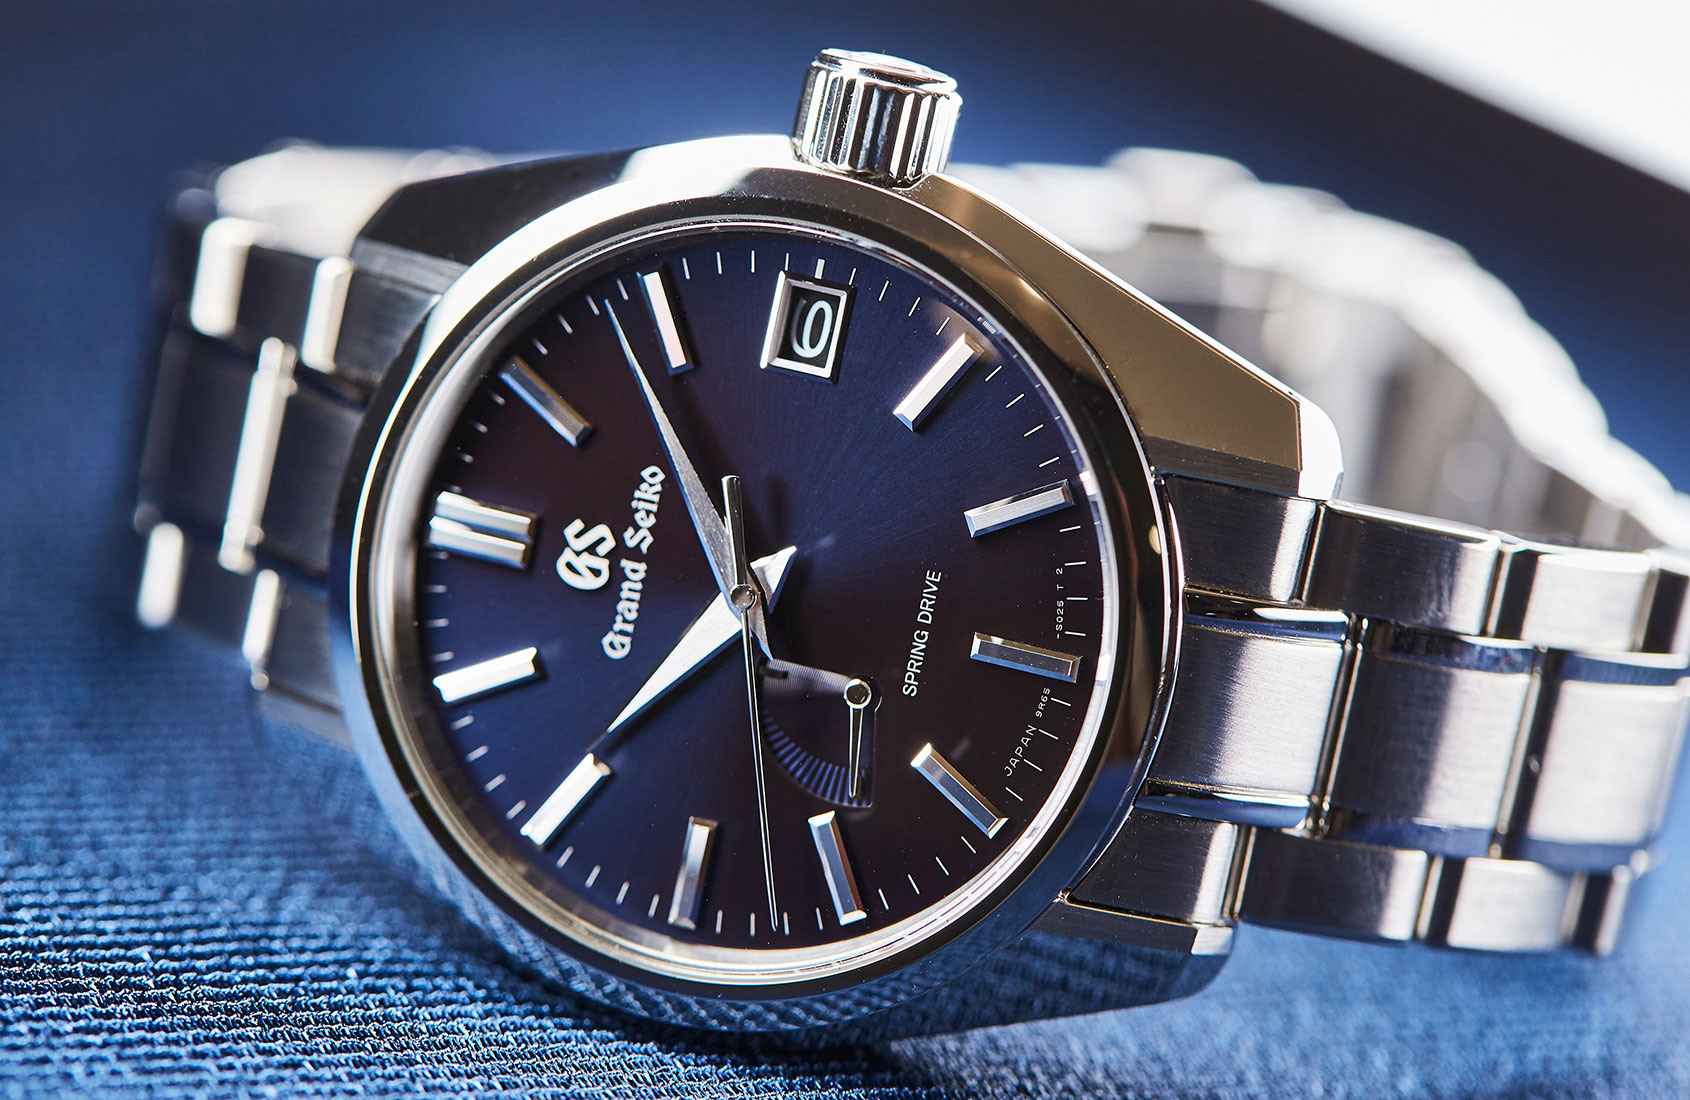 Grand Seiko Collectors Discover Less Known Facts Review 2020